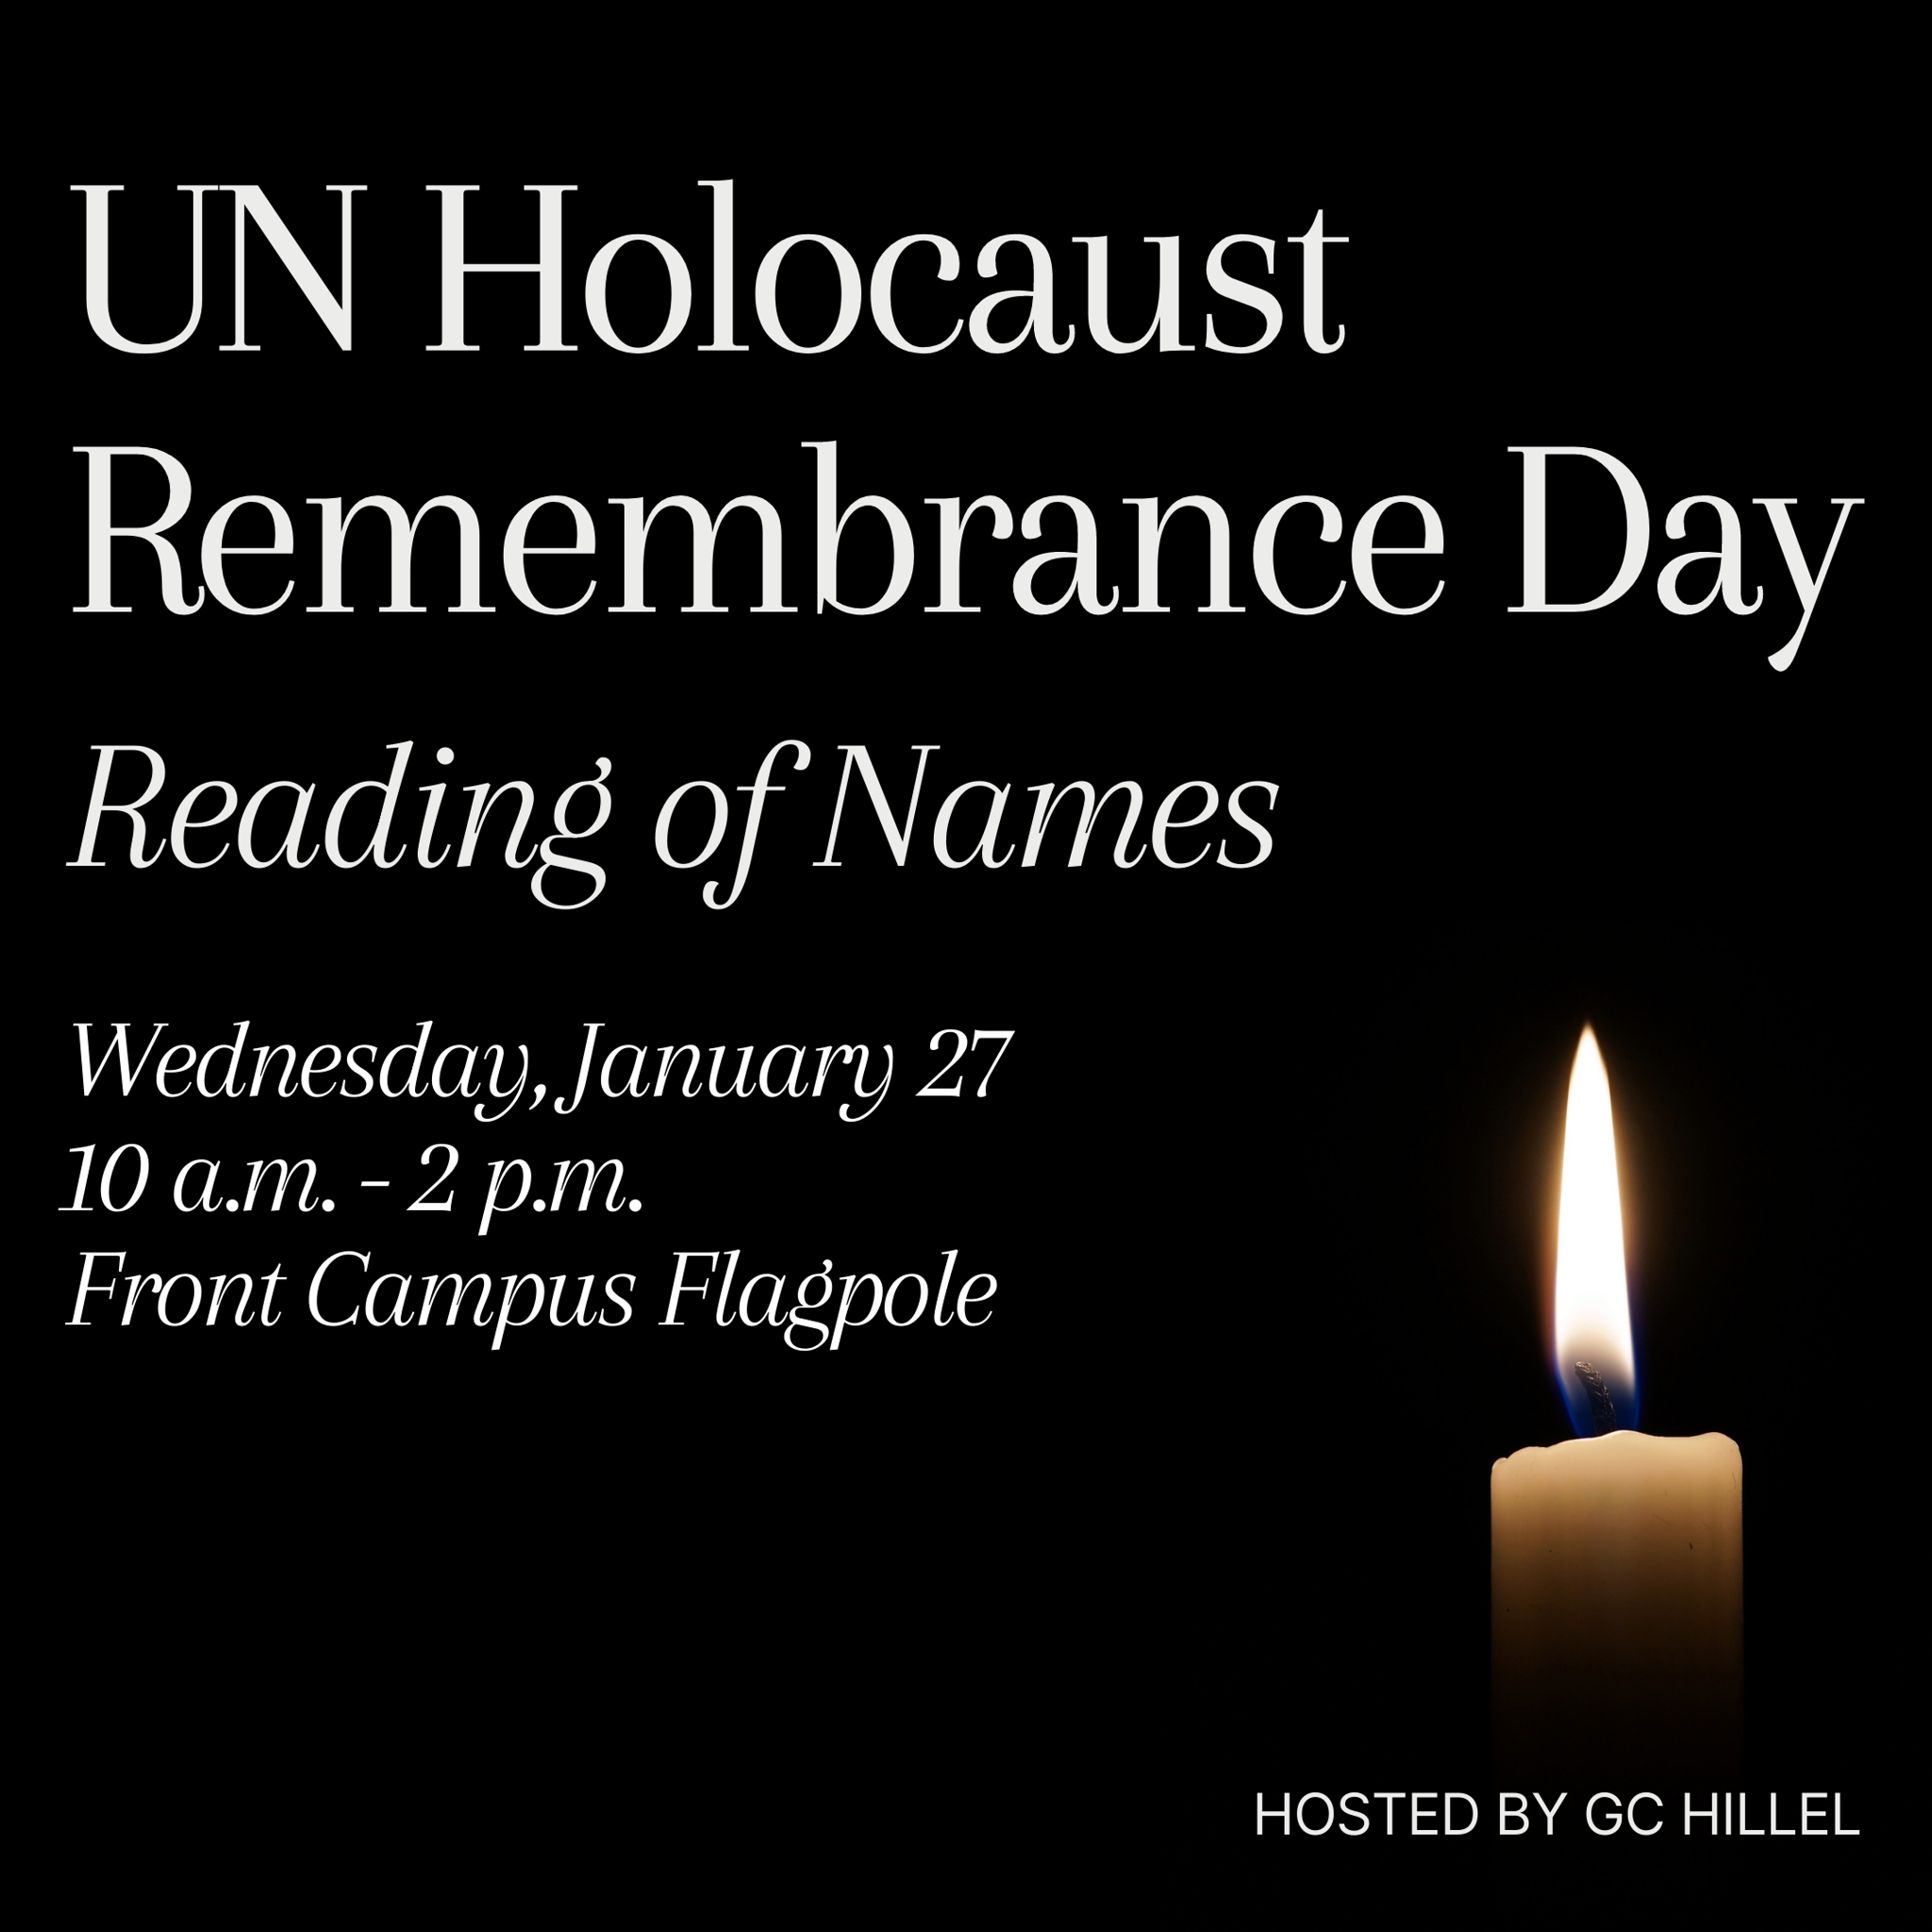 Image of a candle with text UN Holocaust Remembrance Day Reading of Names